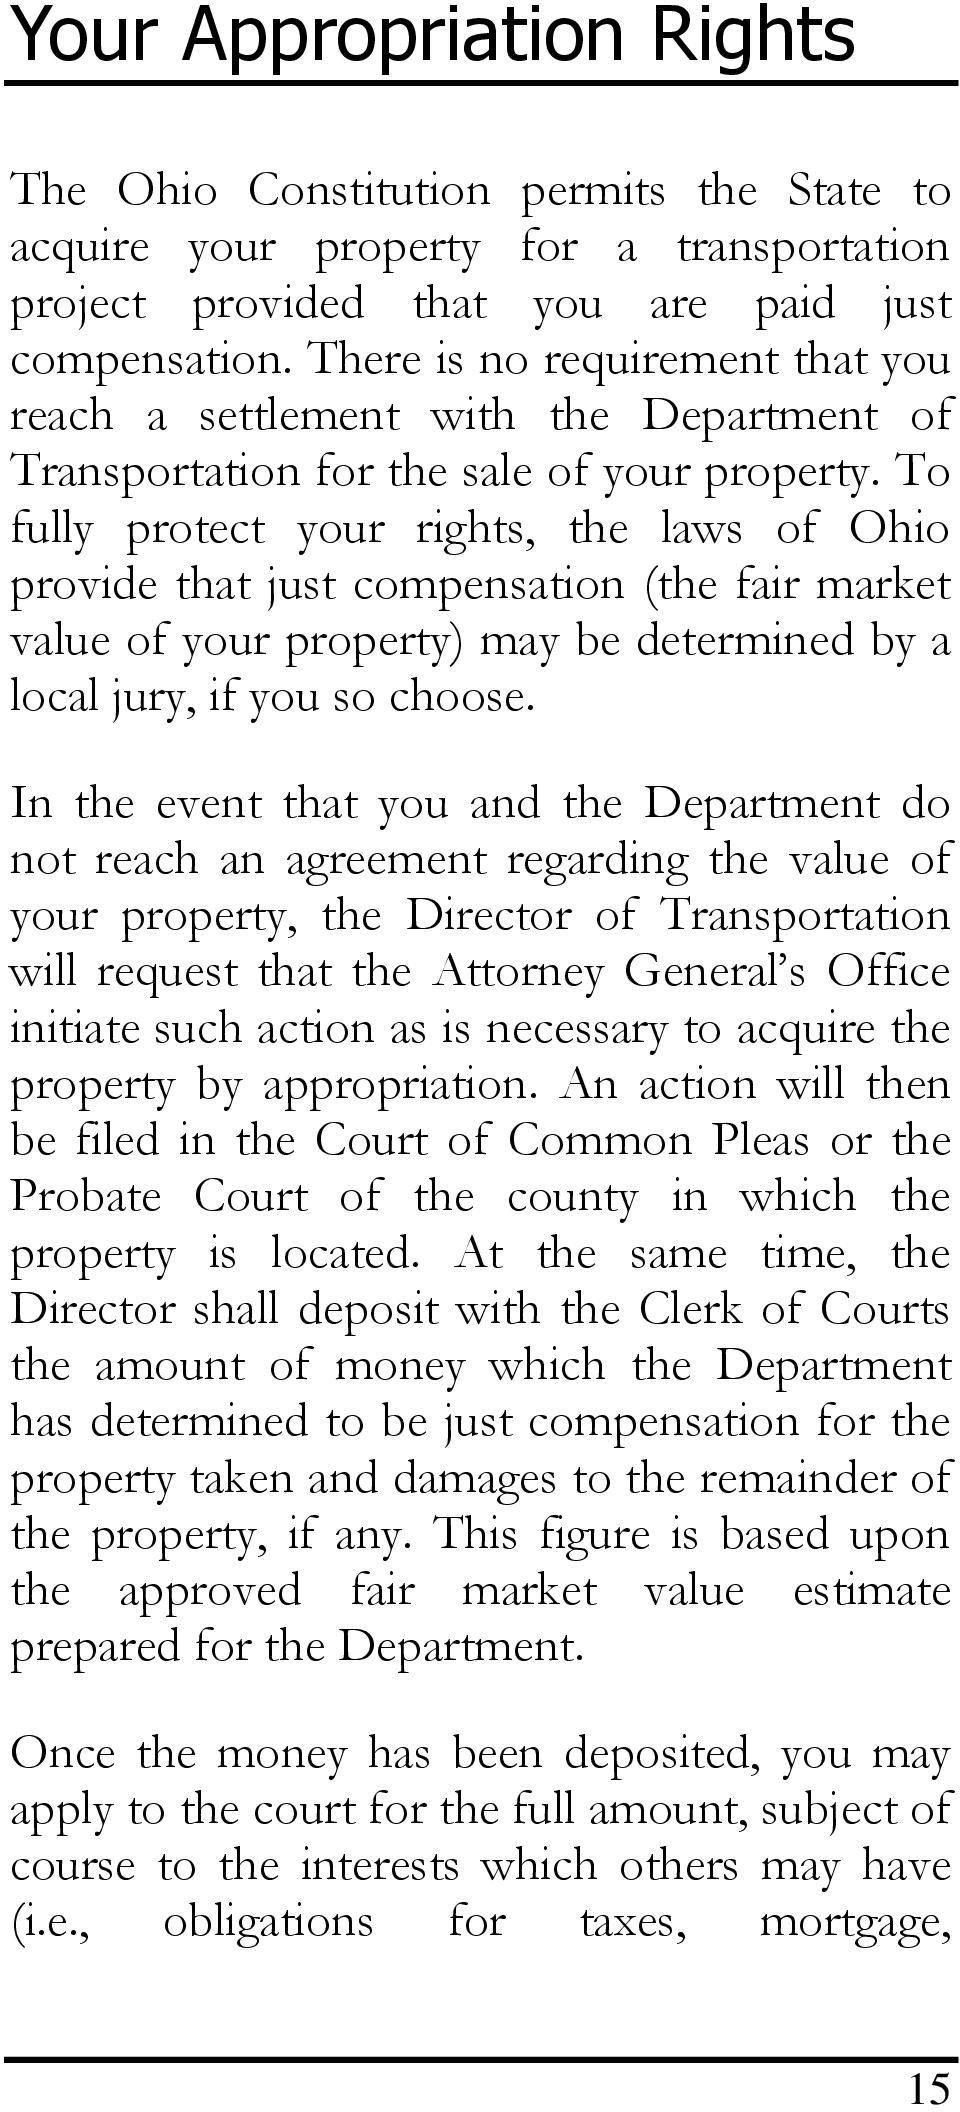 To fully protect your rights, the laws of Ohio provide that just compensation (the fair market value of your property) may be determined by a local jury, if you so choose.